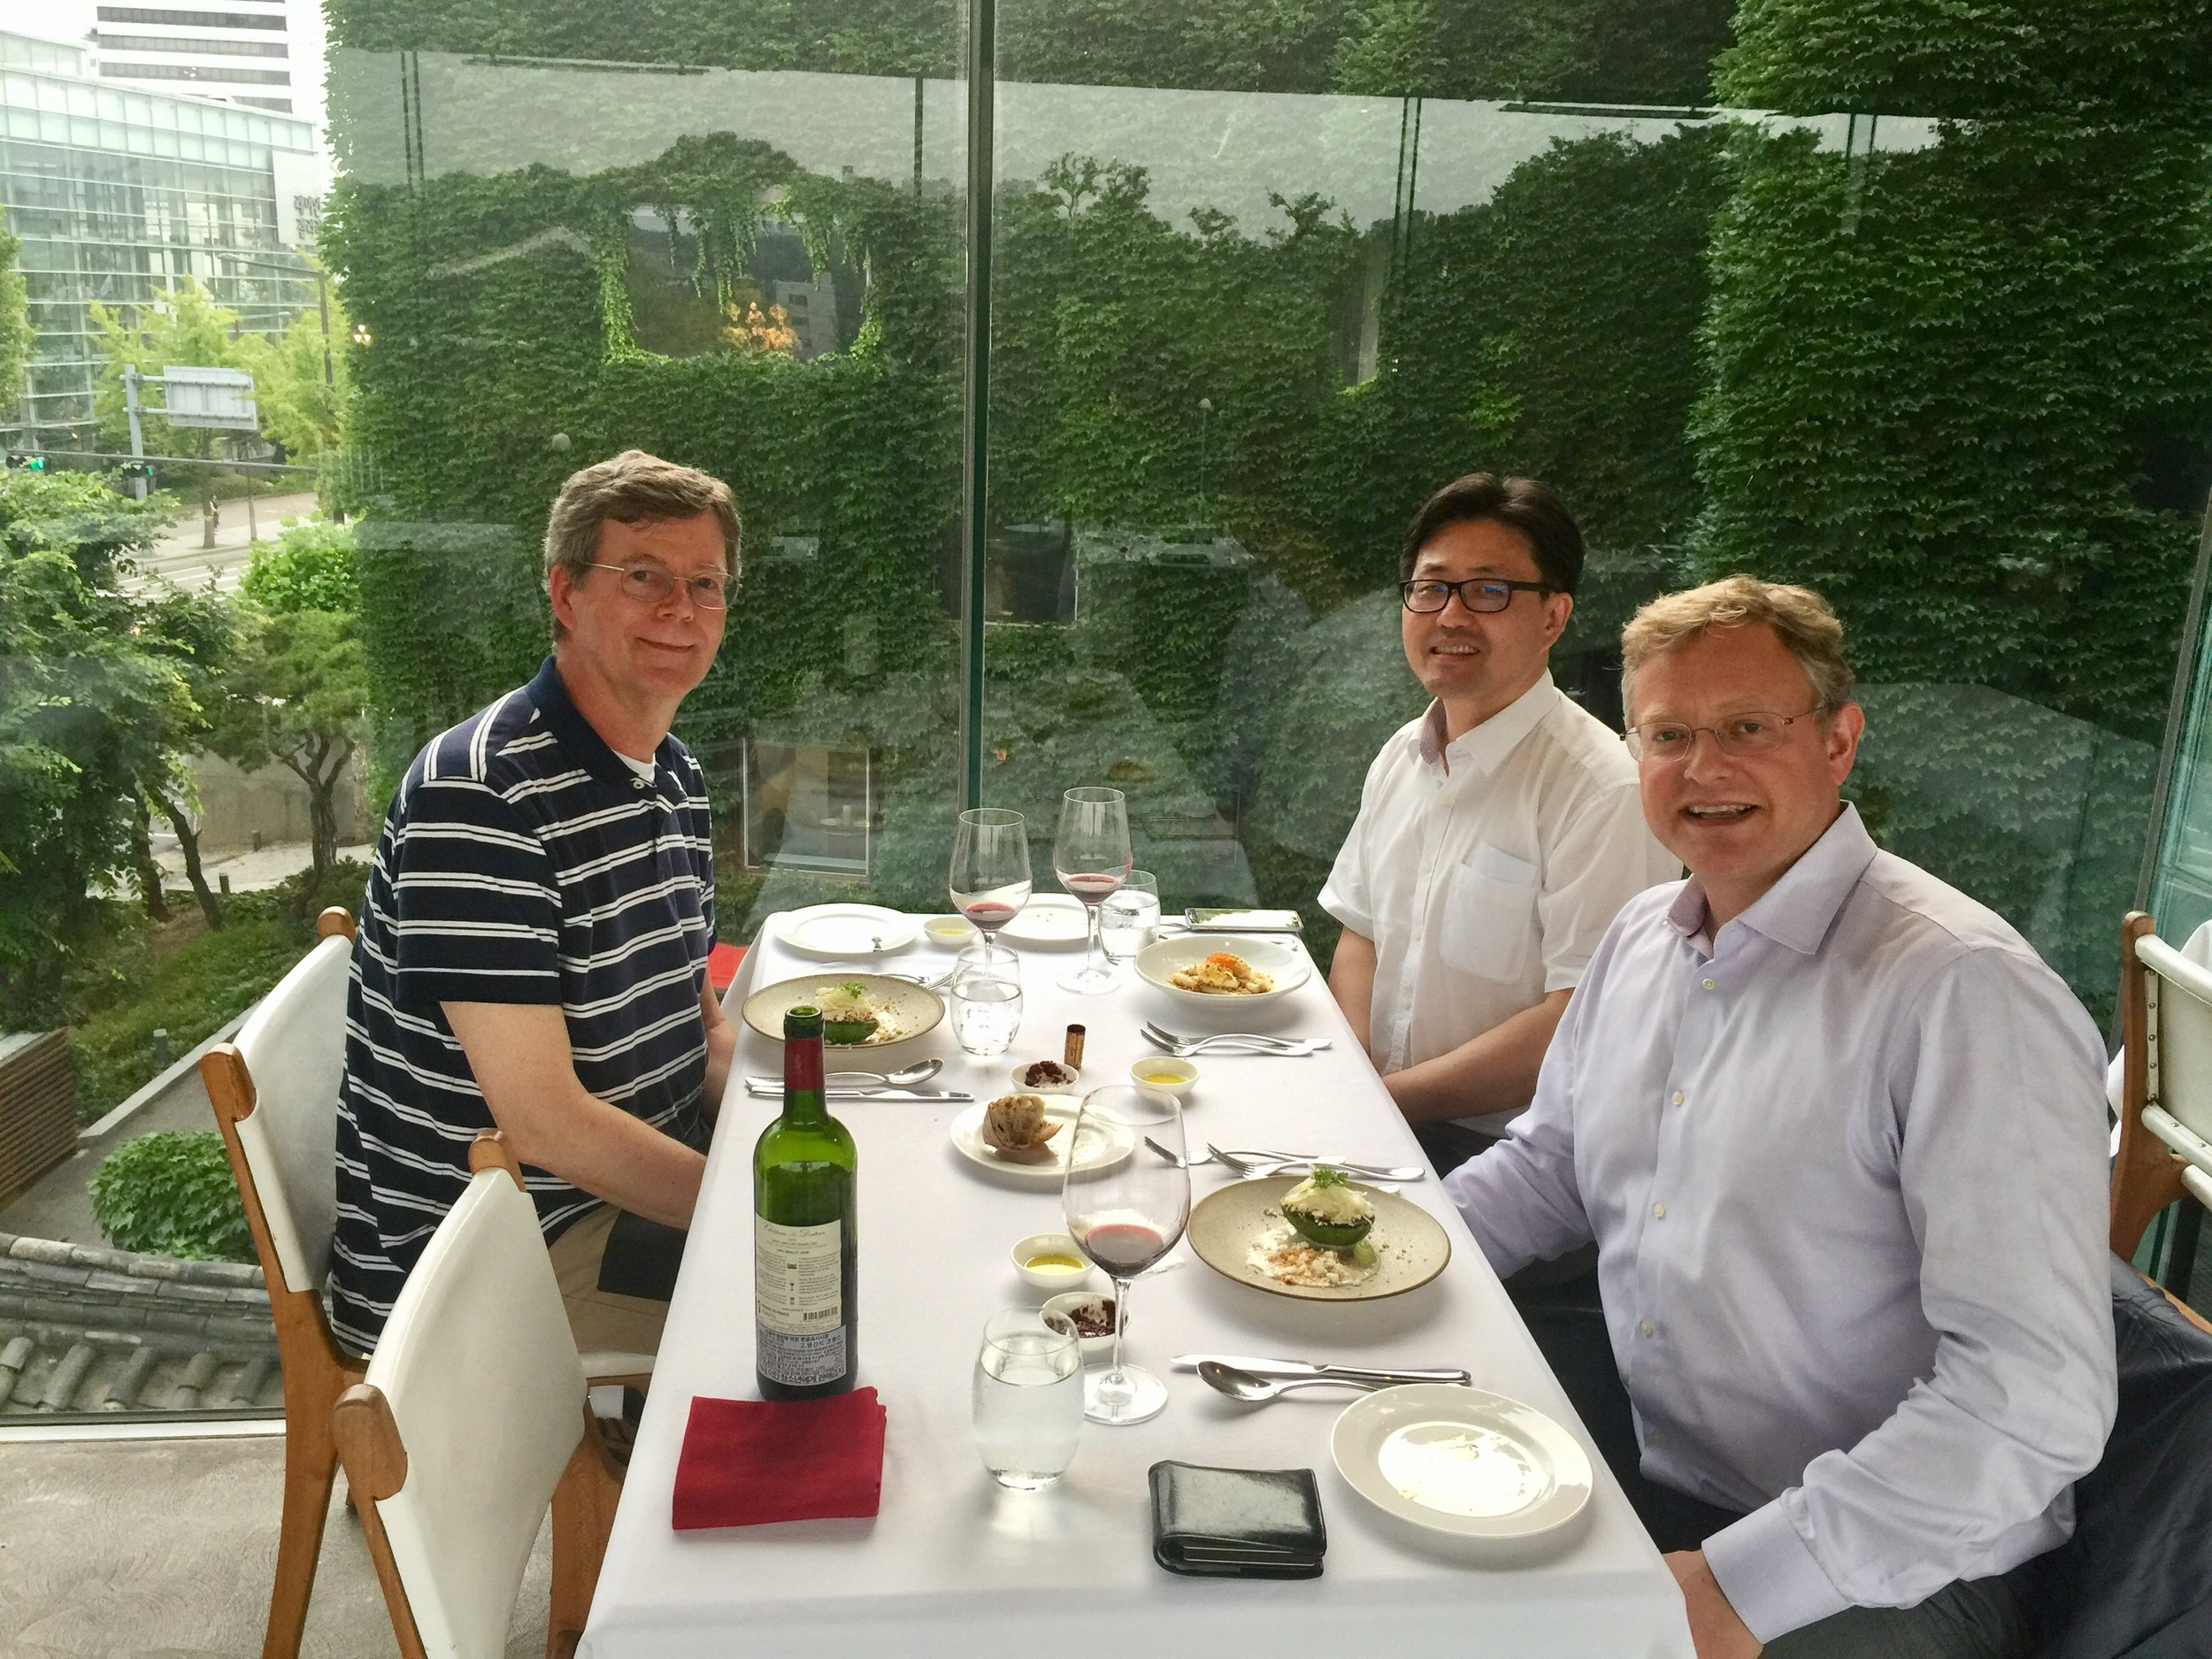 This week in Seoul is turning Green. Had dinner today with Dartmouth Japanese History Prof Steve Ericson and Mike Kim '90, Professor of History at Yonsei University in Seoul.